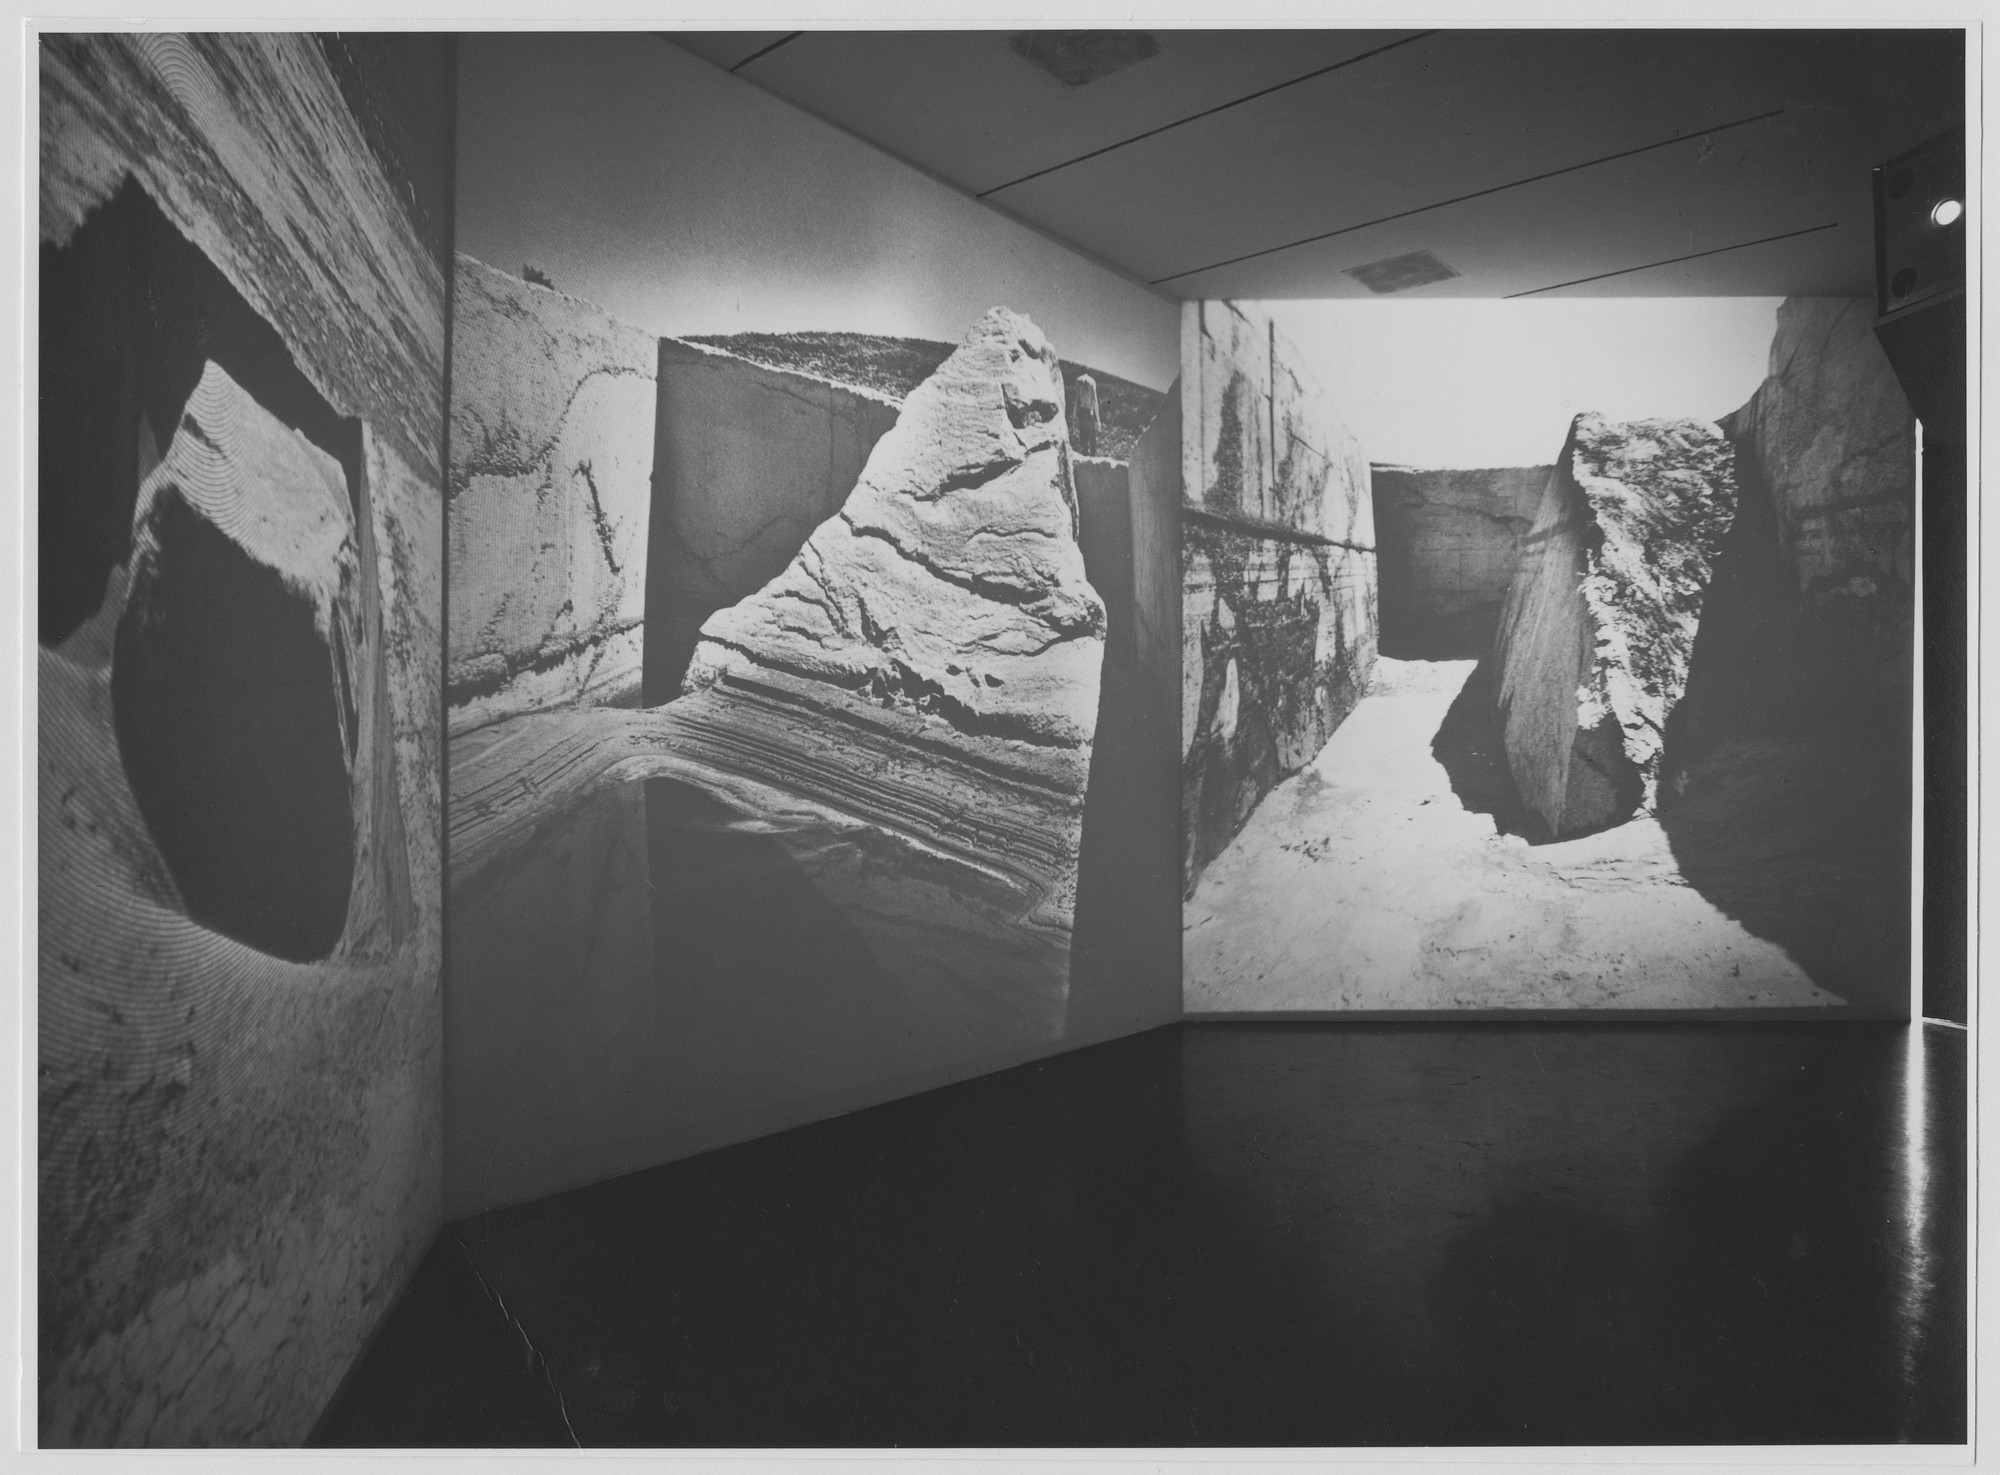 "Installation view of the exhibition, ""Information"" July 2, 1970–September 20, 1970. Photographic Archive. The Museum of Modern Art Archives, New York. IN934.1. Photograph by James Mathews."